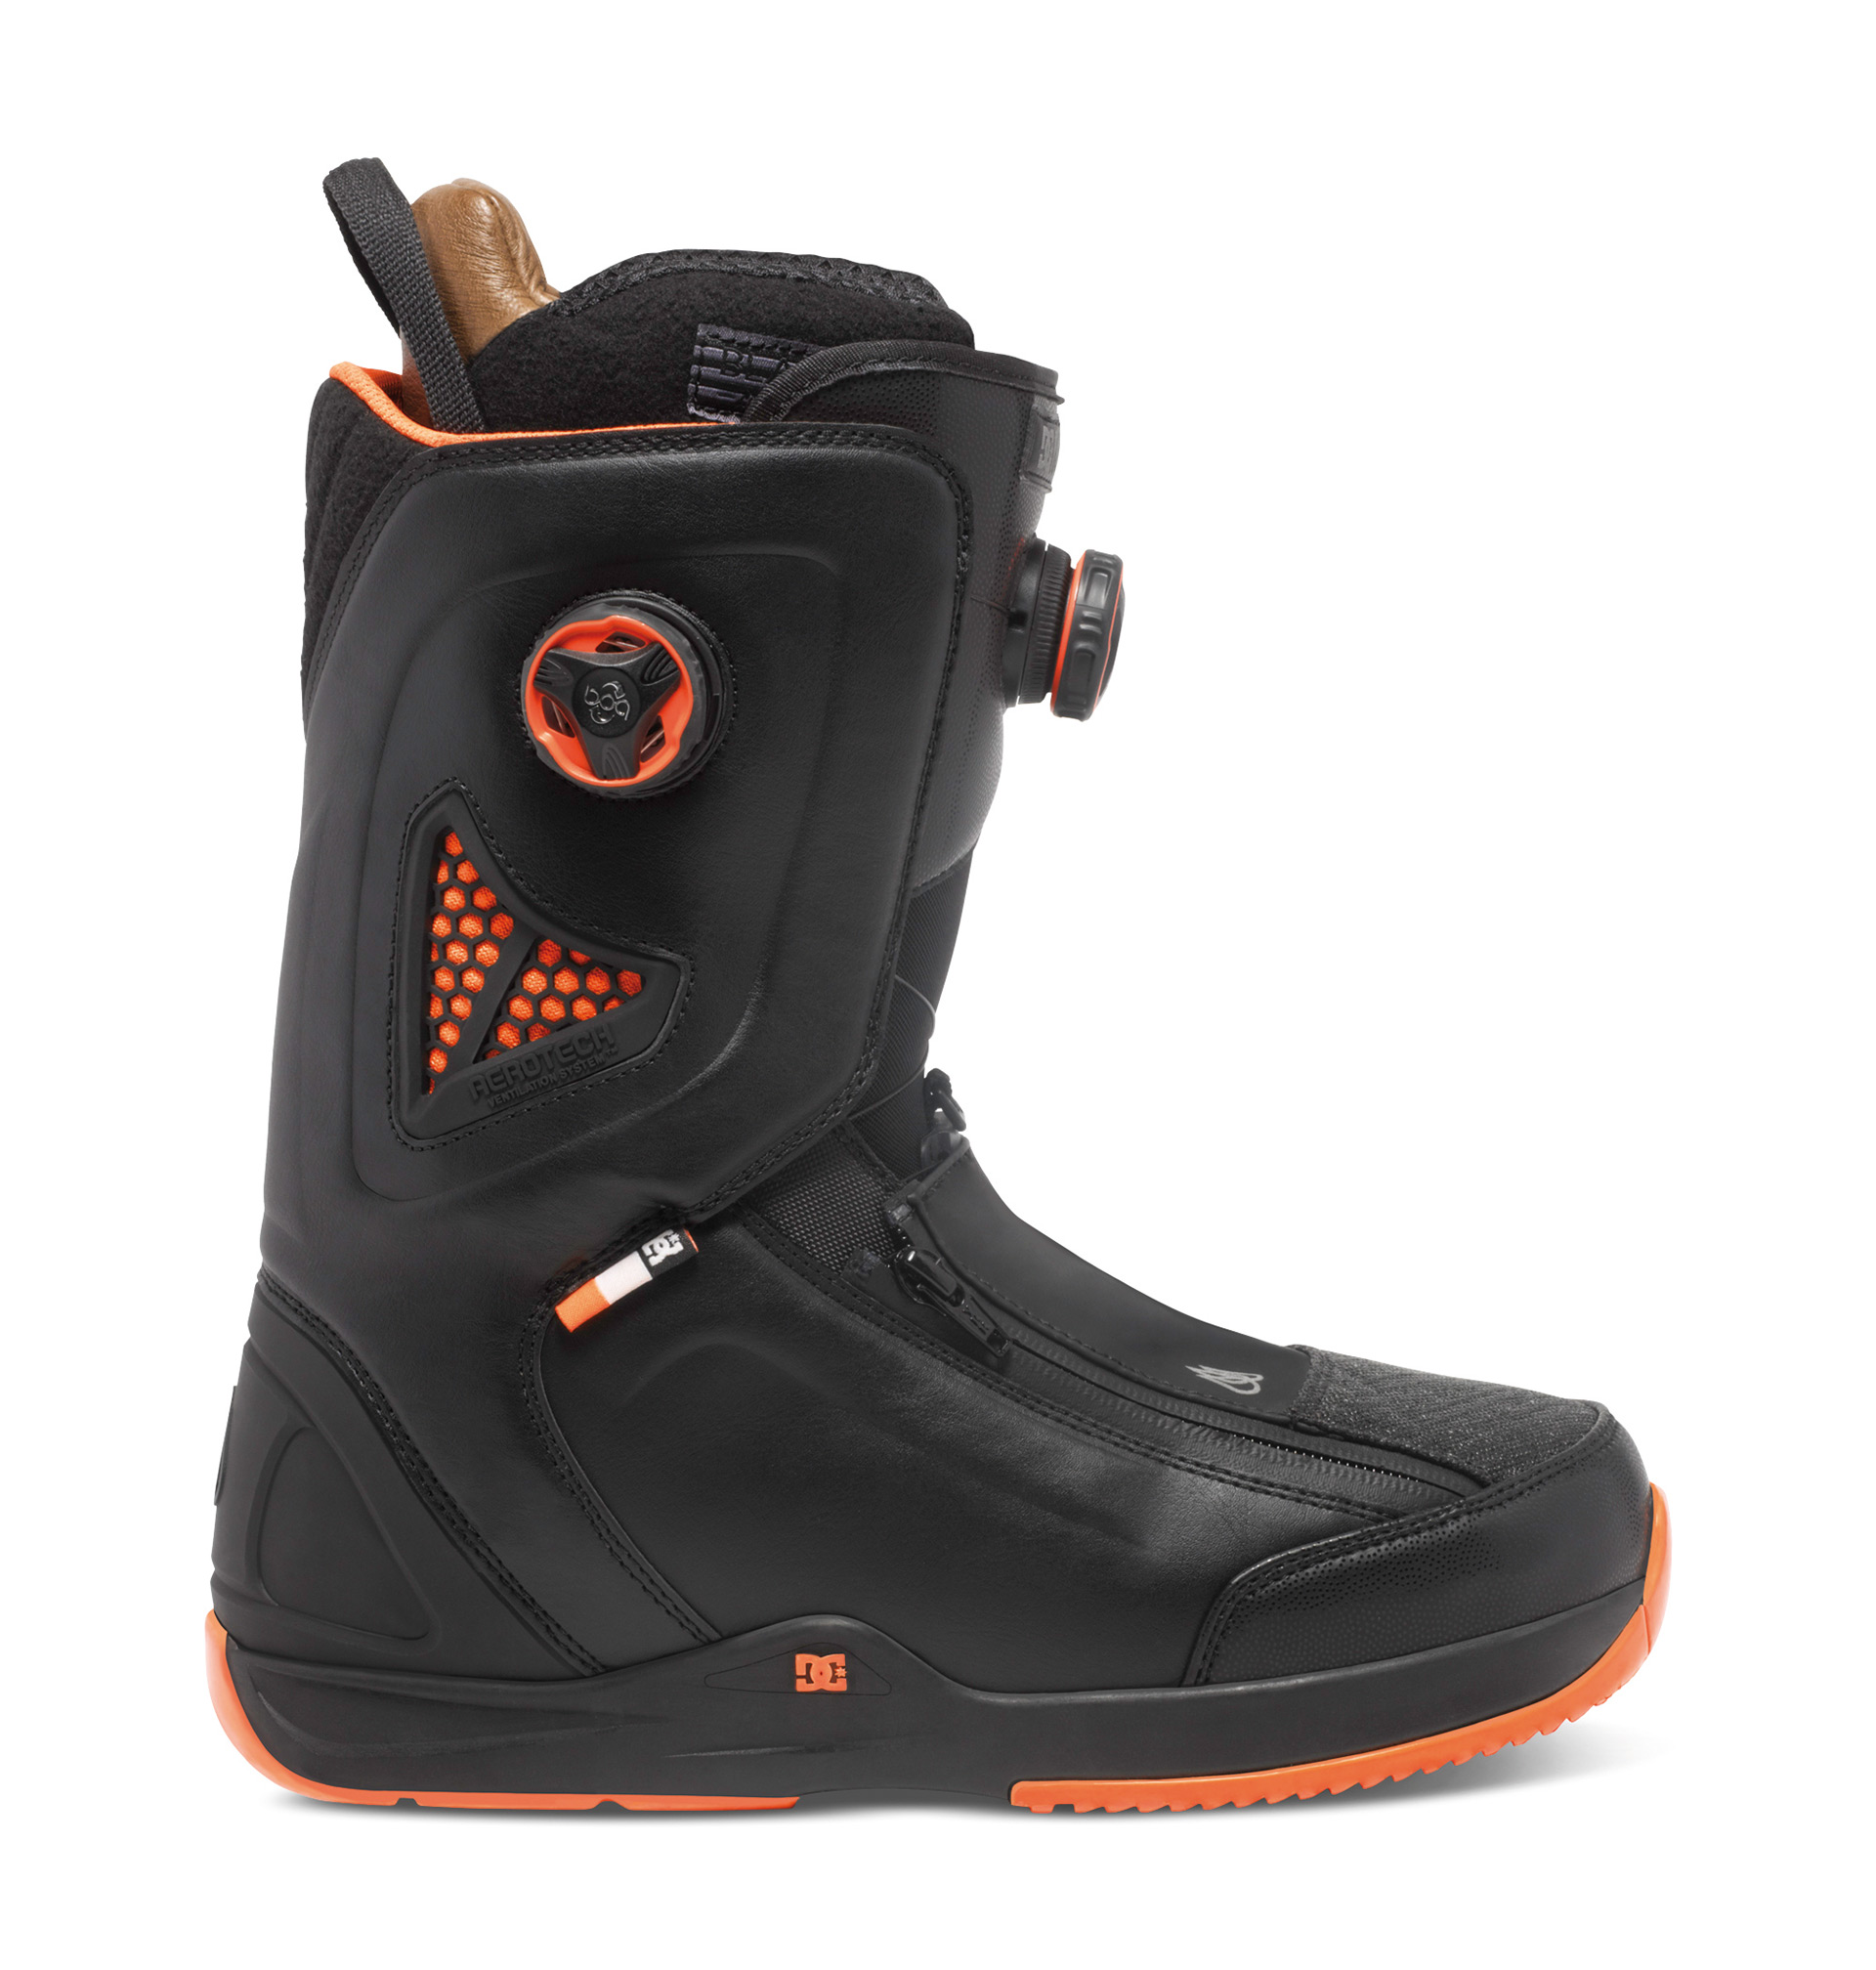 Travis Rice Boot Dc Prime Snowboarding